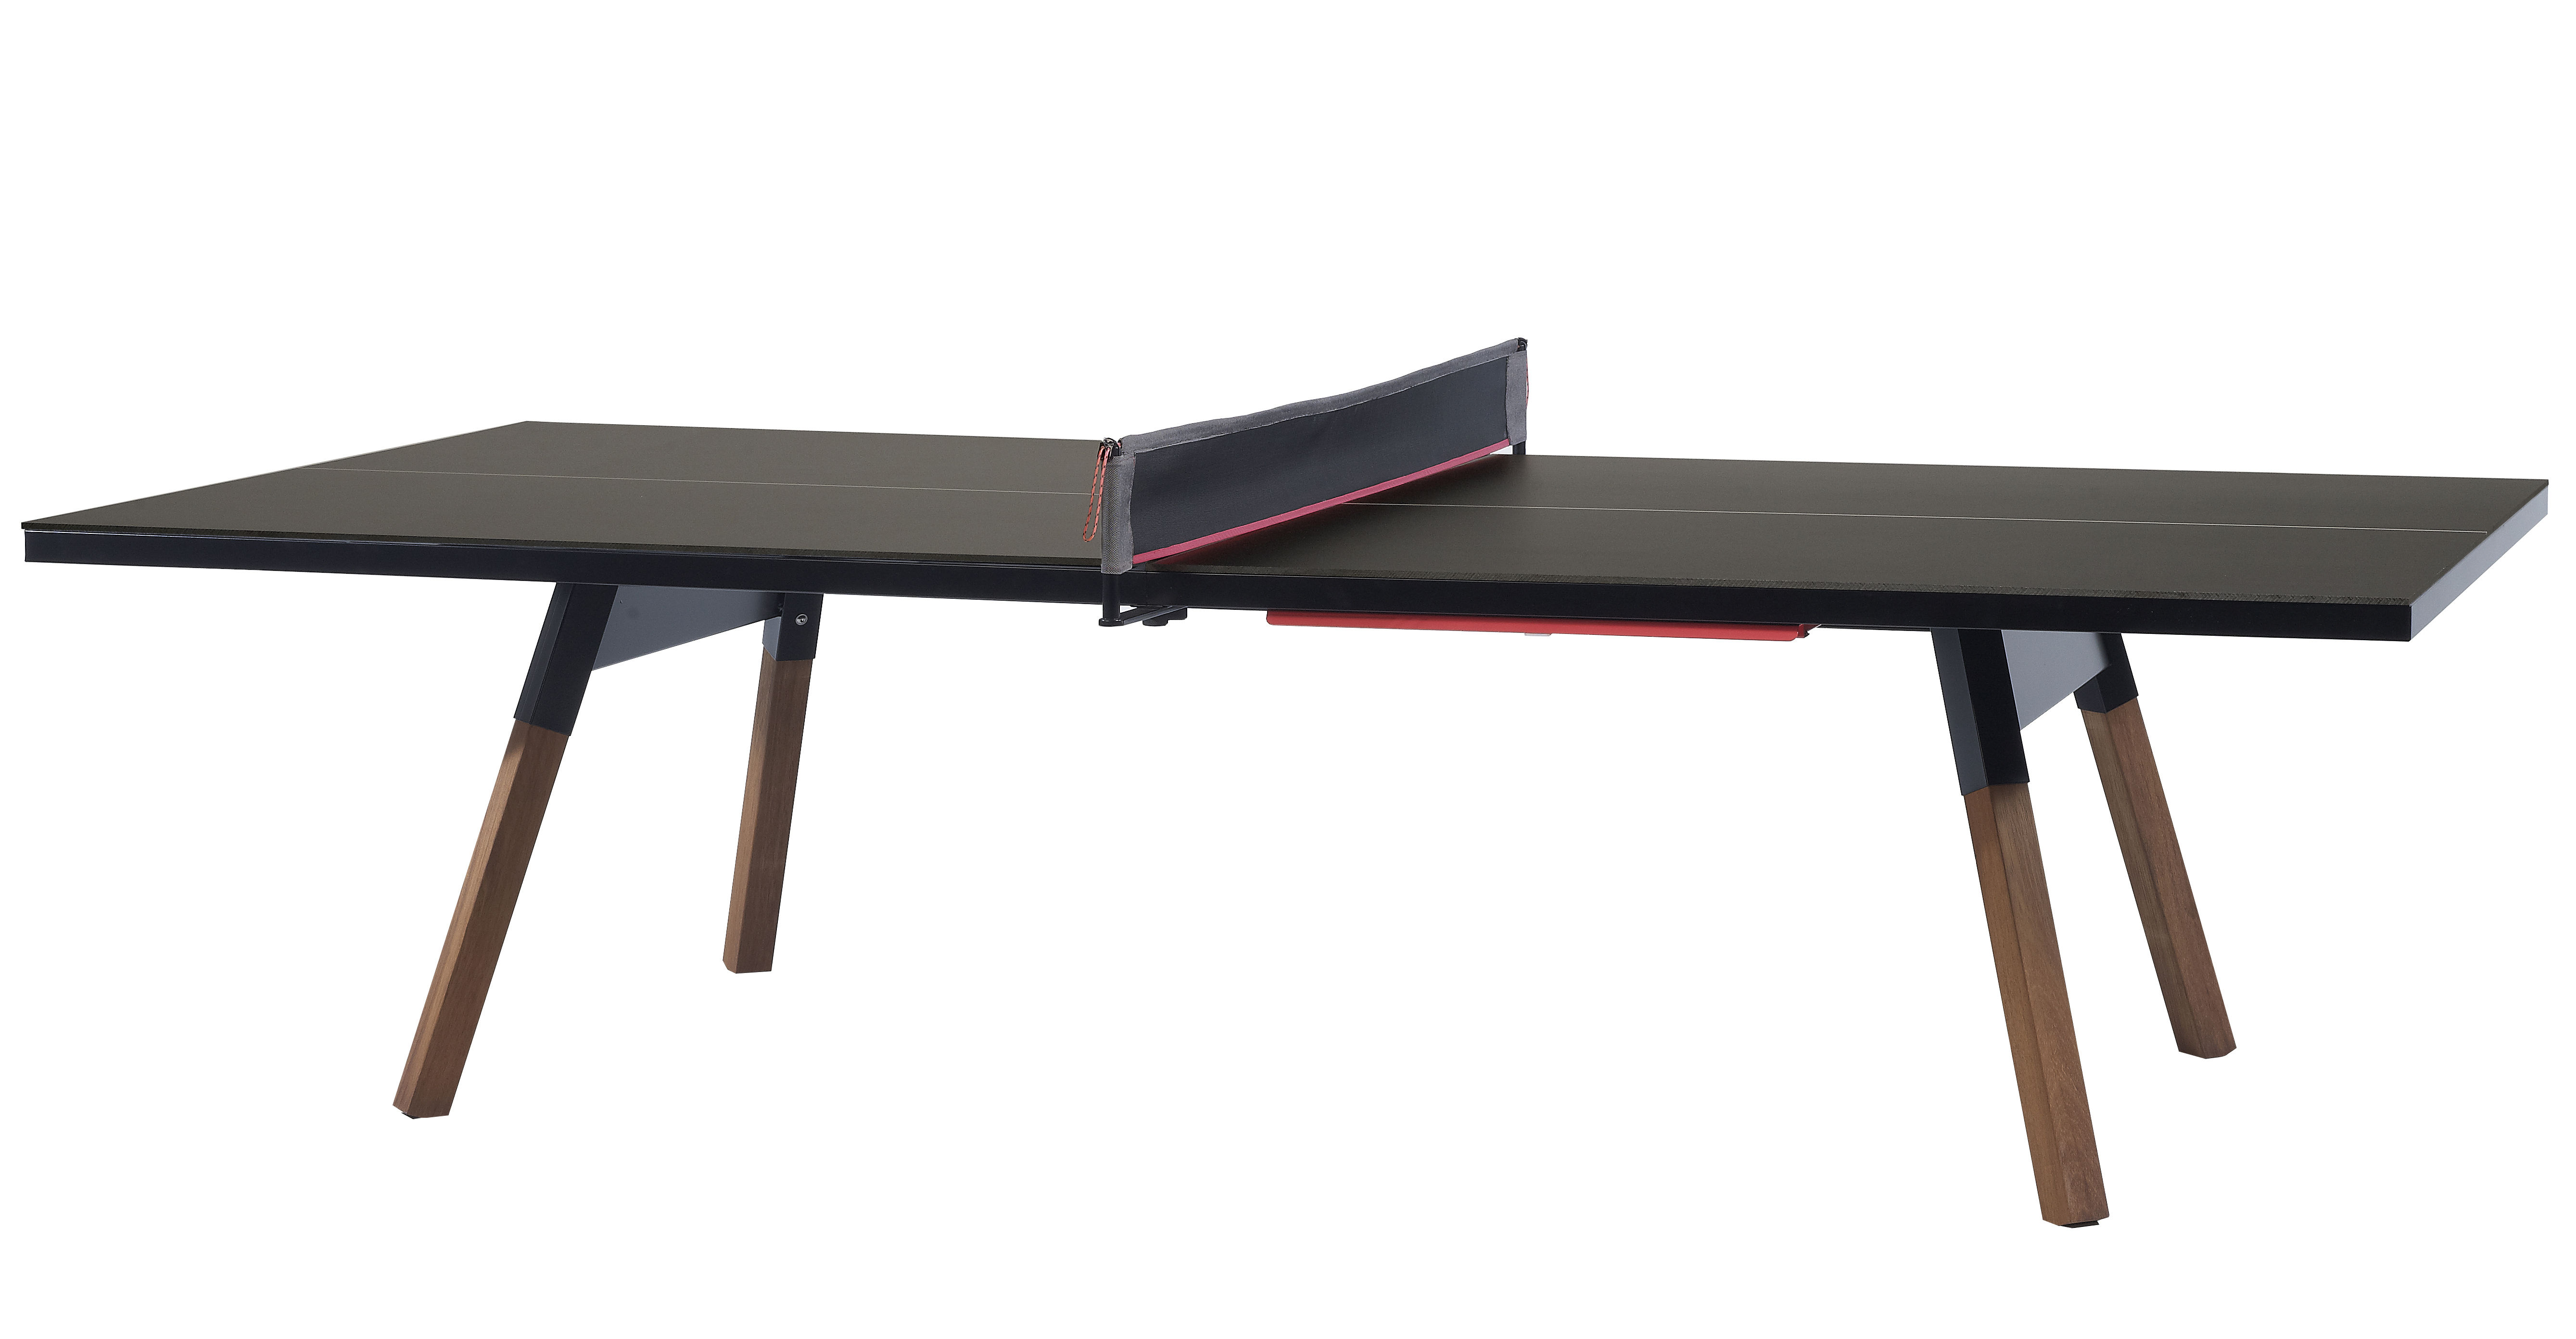 Outdoor - Garden Tables - Table - L 274 cm /  Ping pong & dining table by RS BARCELONA - Black / Wood legs - HPL, Iroko wood, Steel